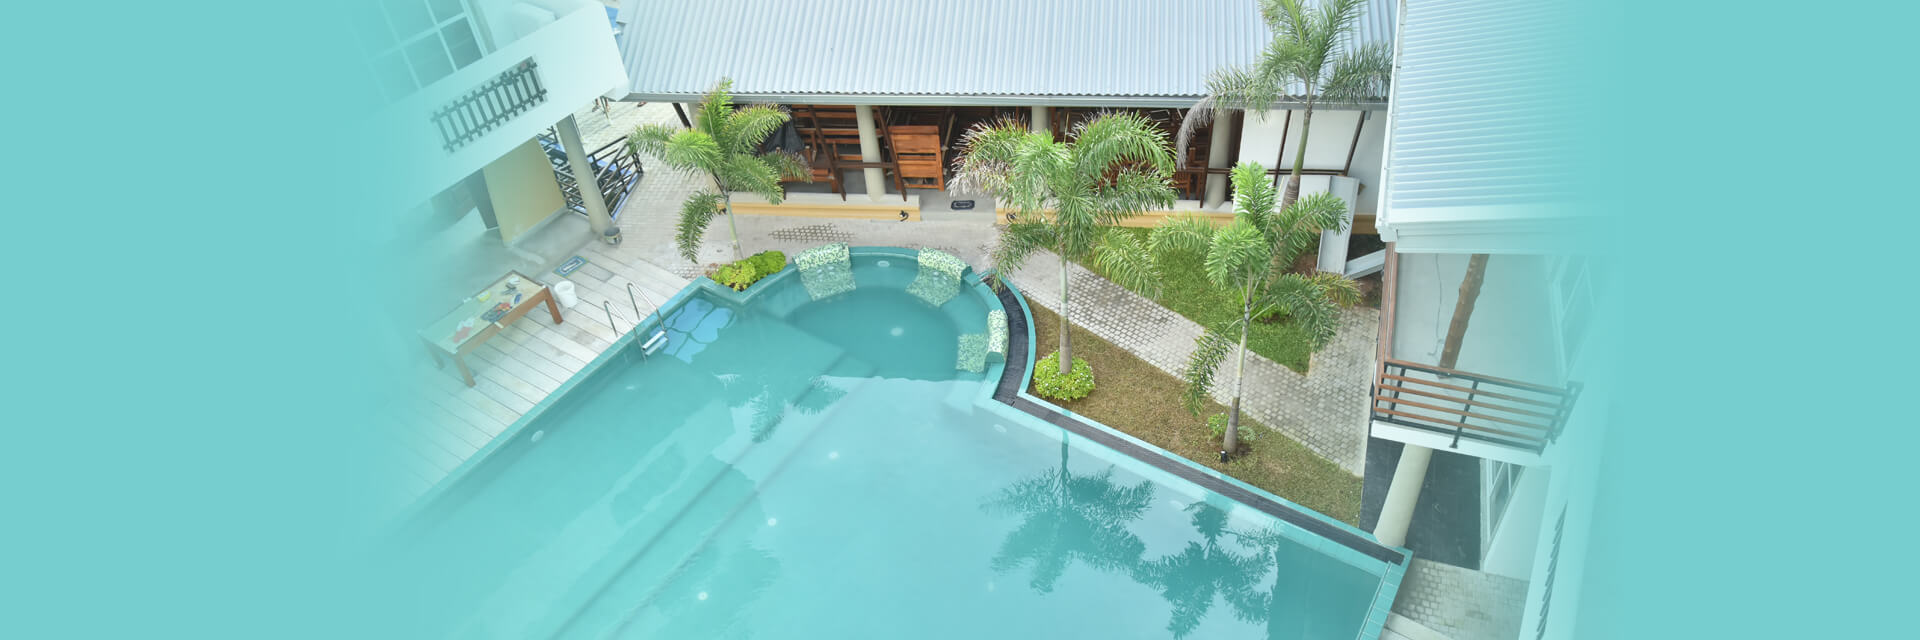 galle hotels sri lanka - Swiming Pool Nili Diya Beach Resort Matara